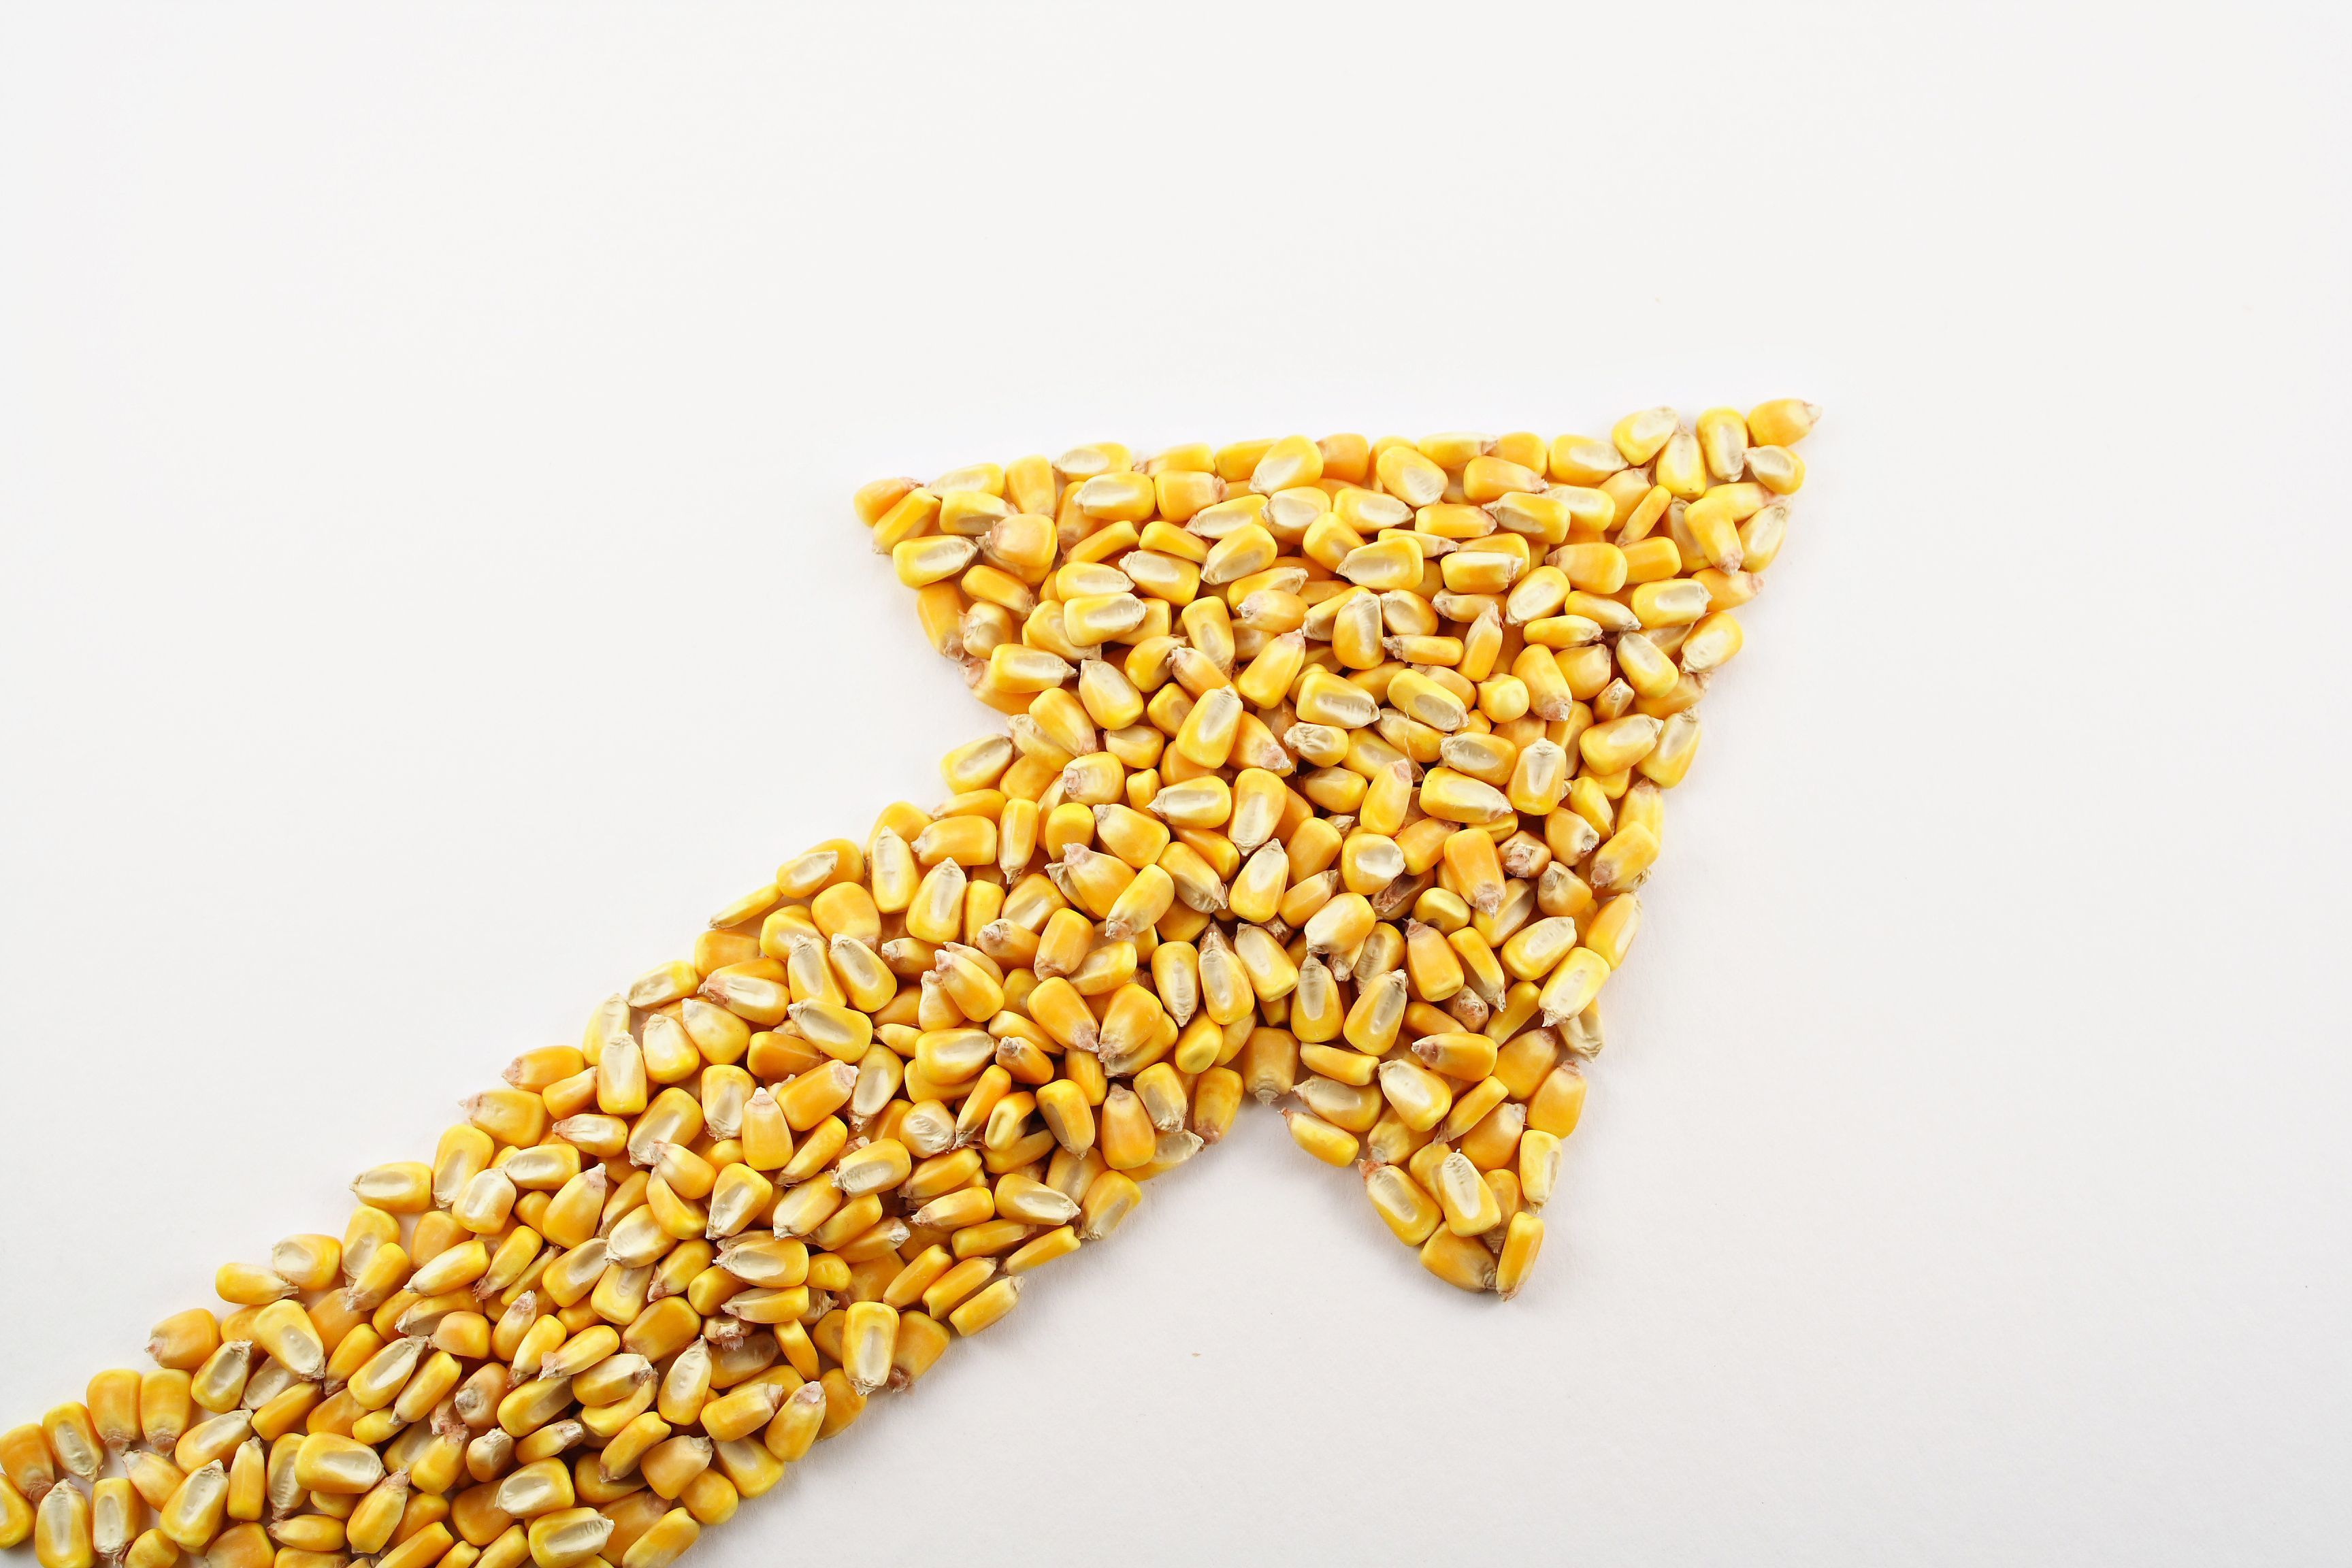 An arrow filled with corn, pointing to the top right of the image